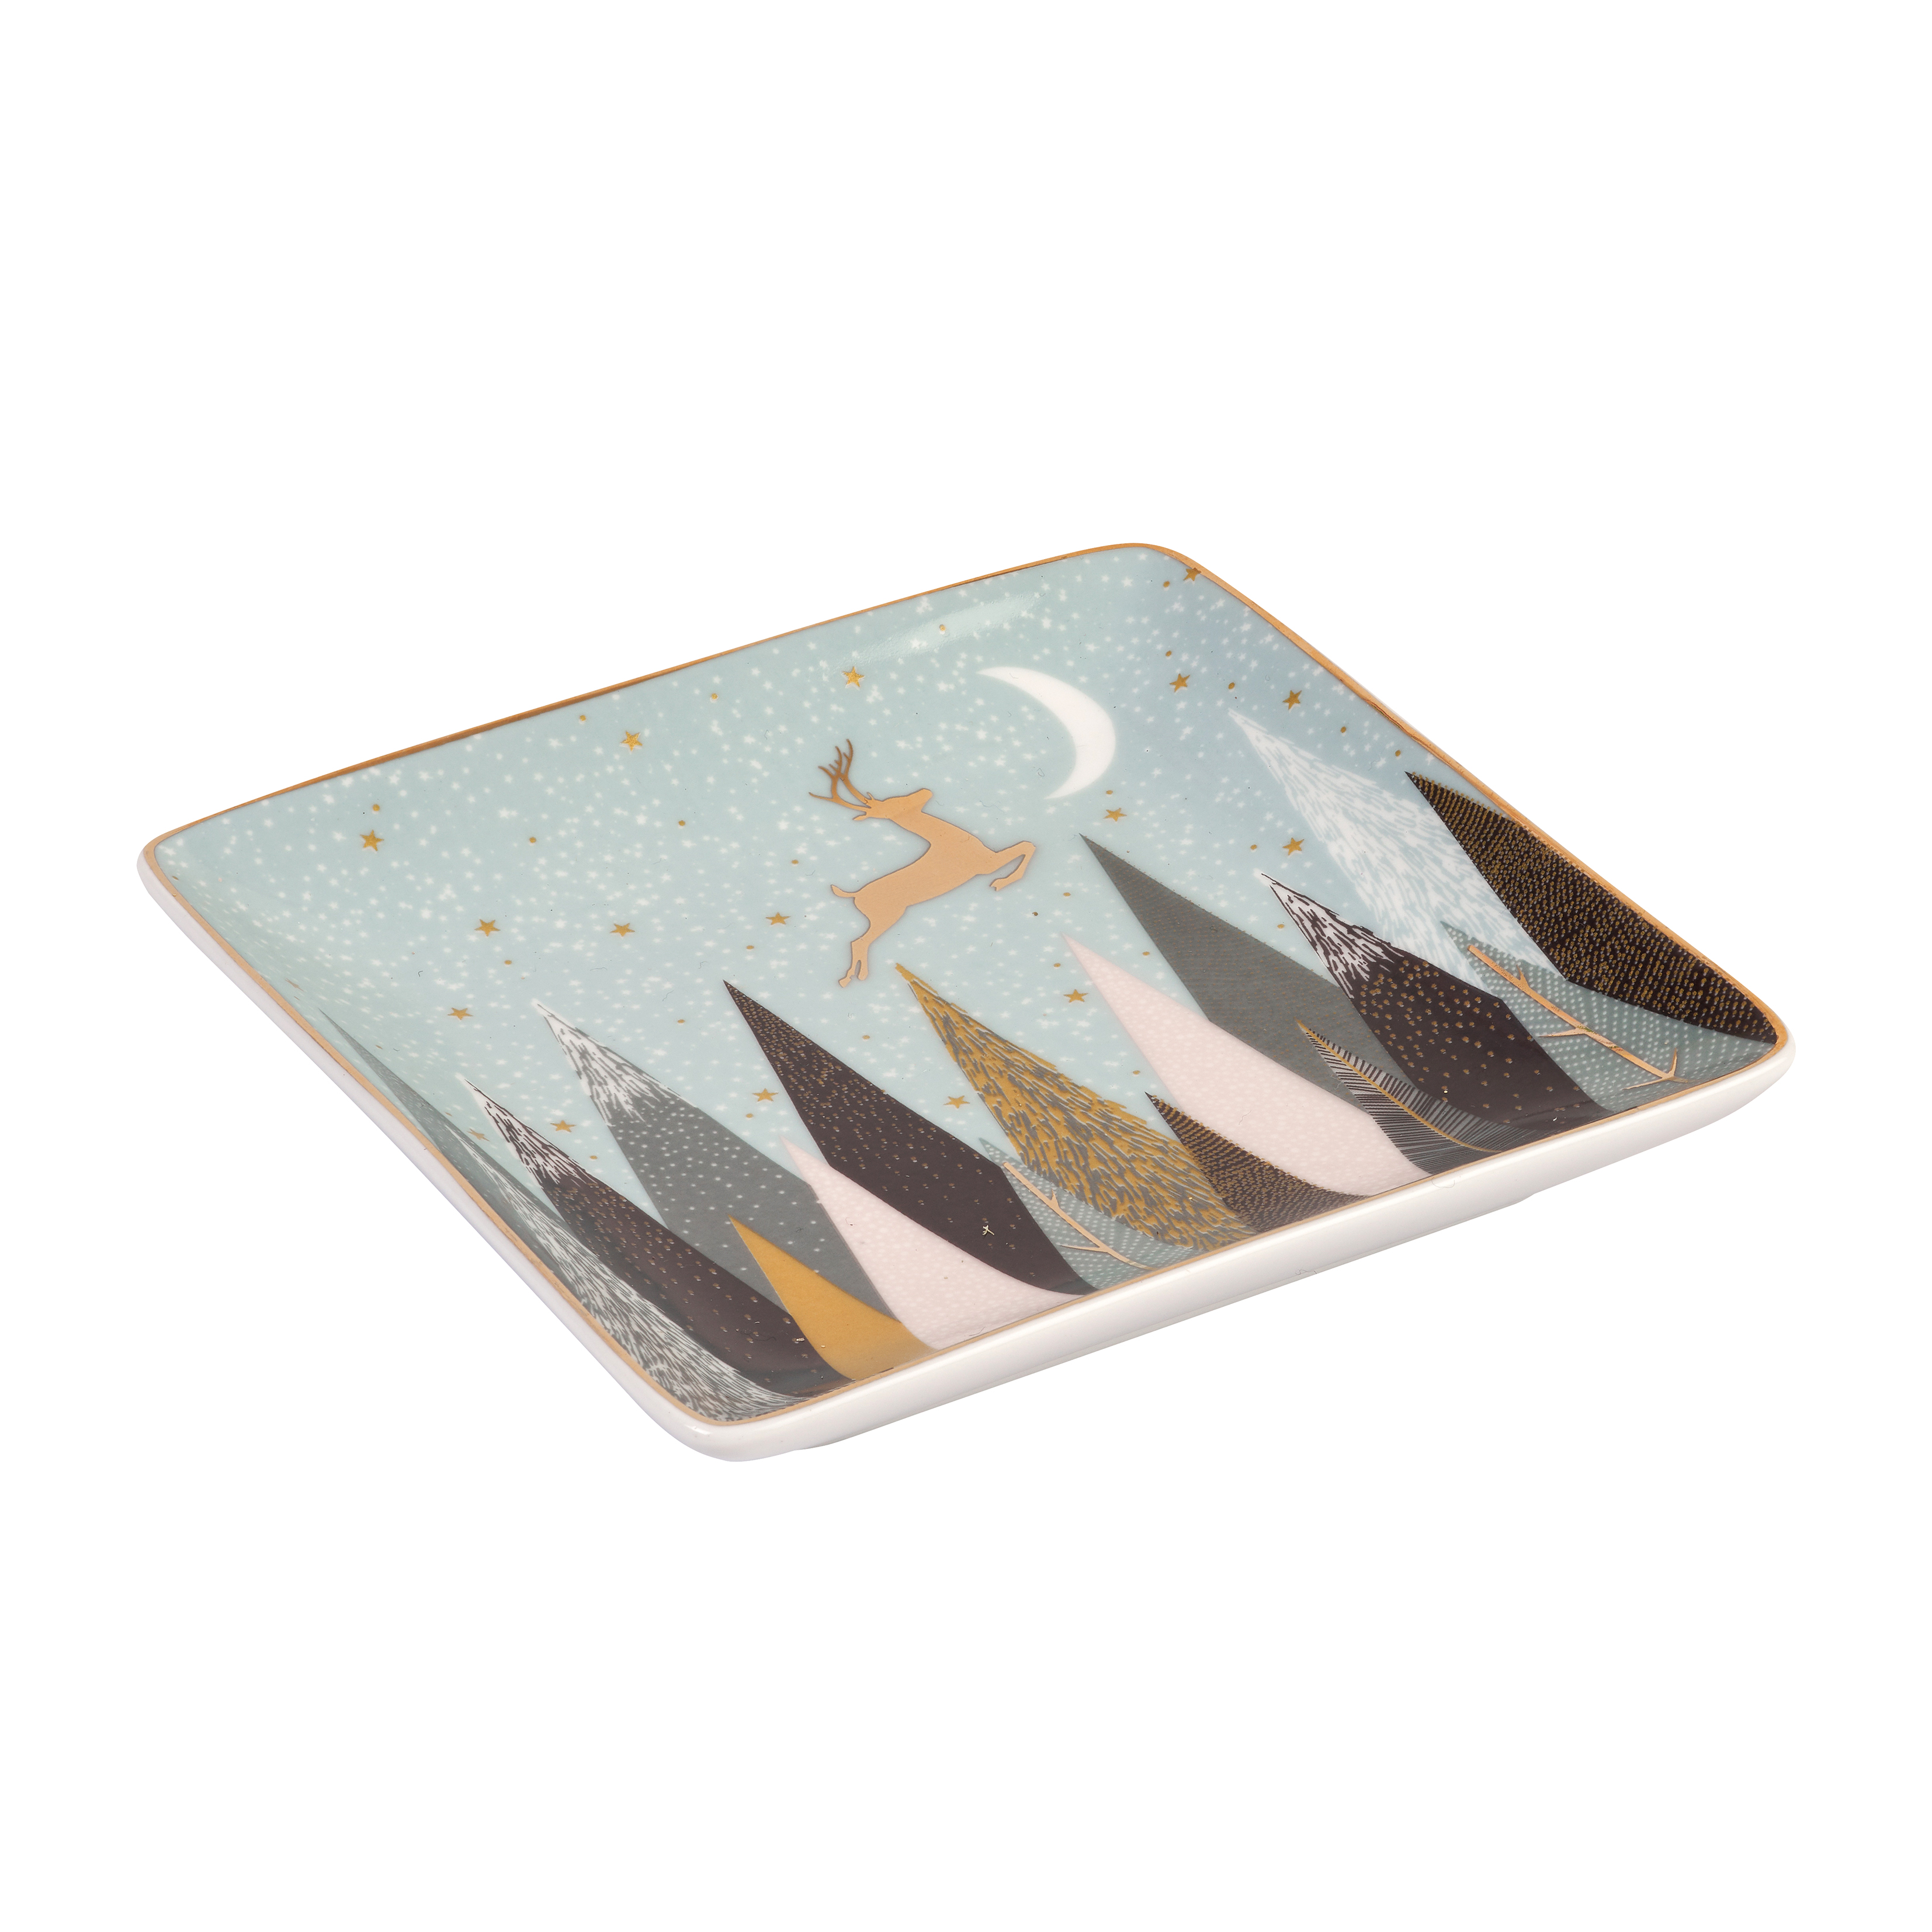 Sara Miller London for Portmeirion Frosted Pines Set of 3 Square Trays 4.5 Inch image number 3